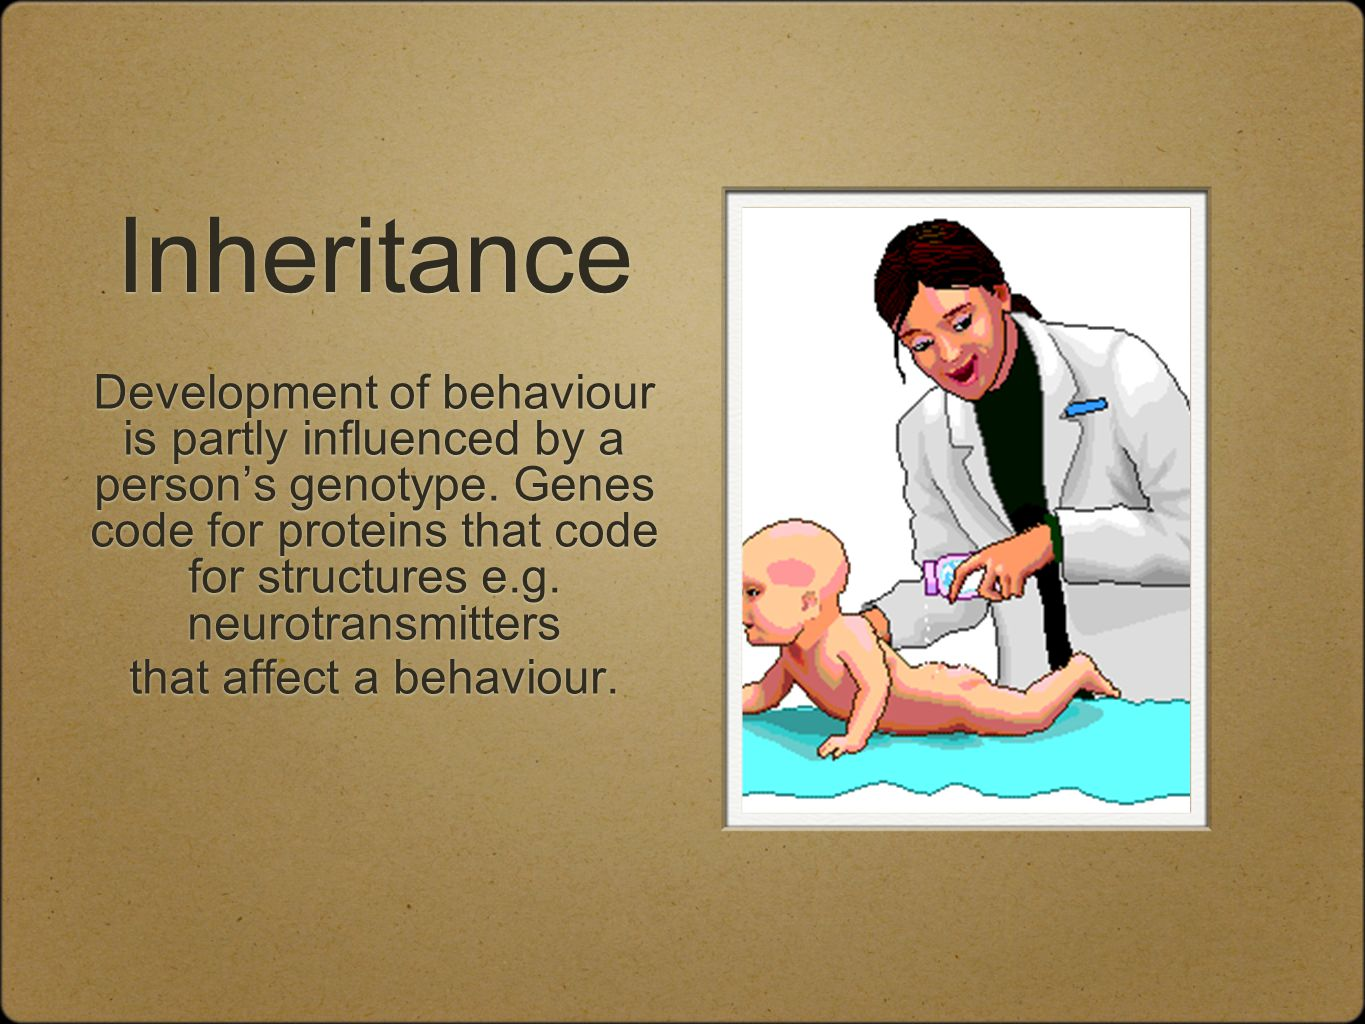 Inheritance Development of behaviour is partly influenced by a person's genotype.